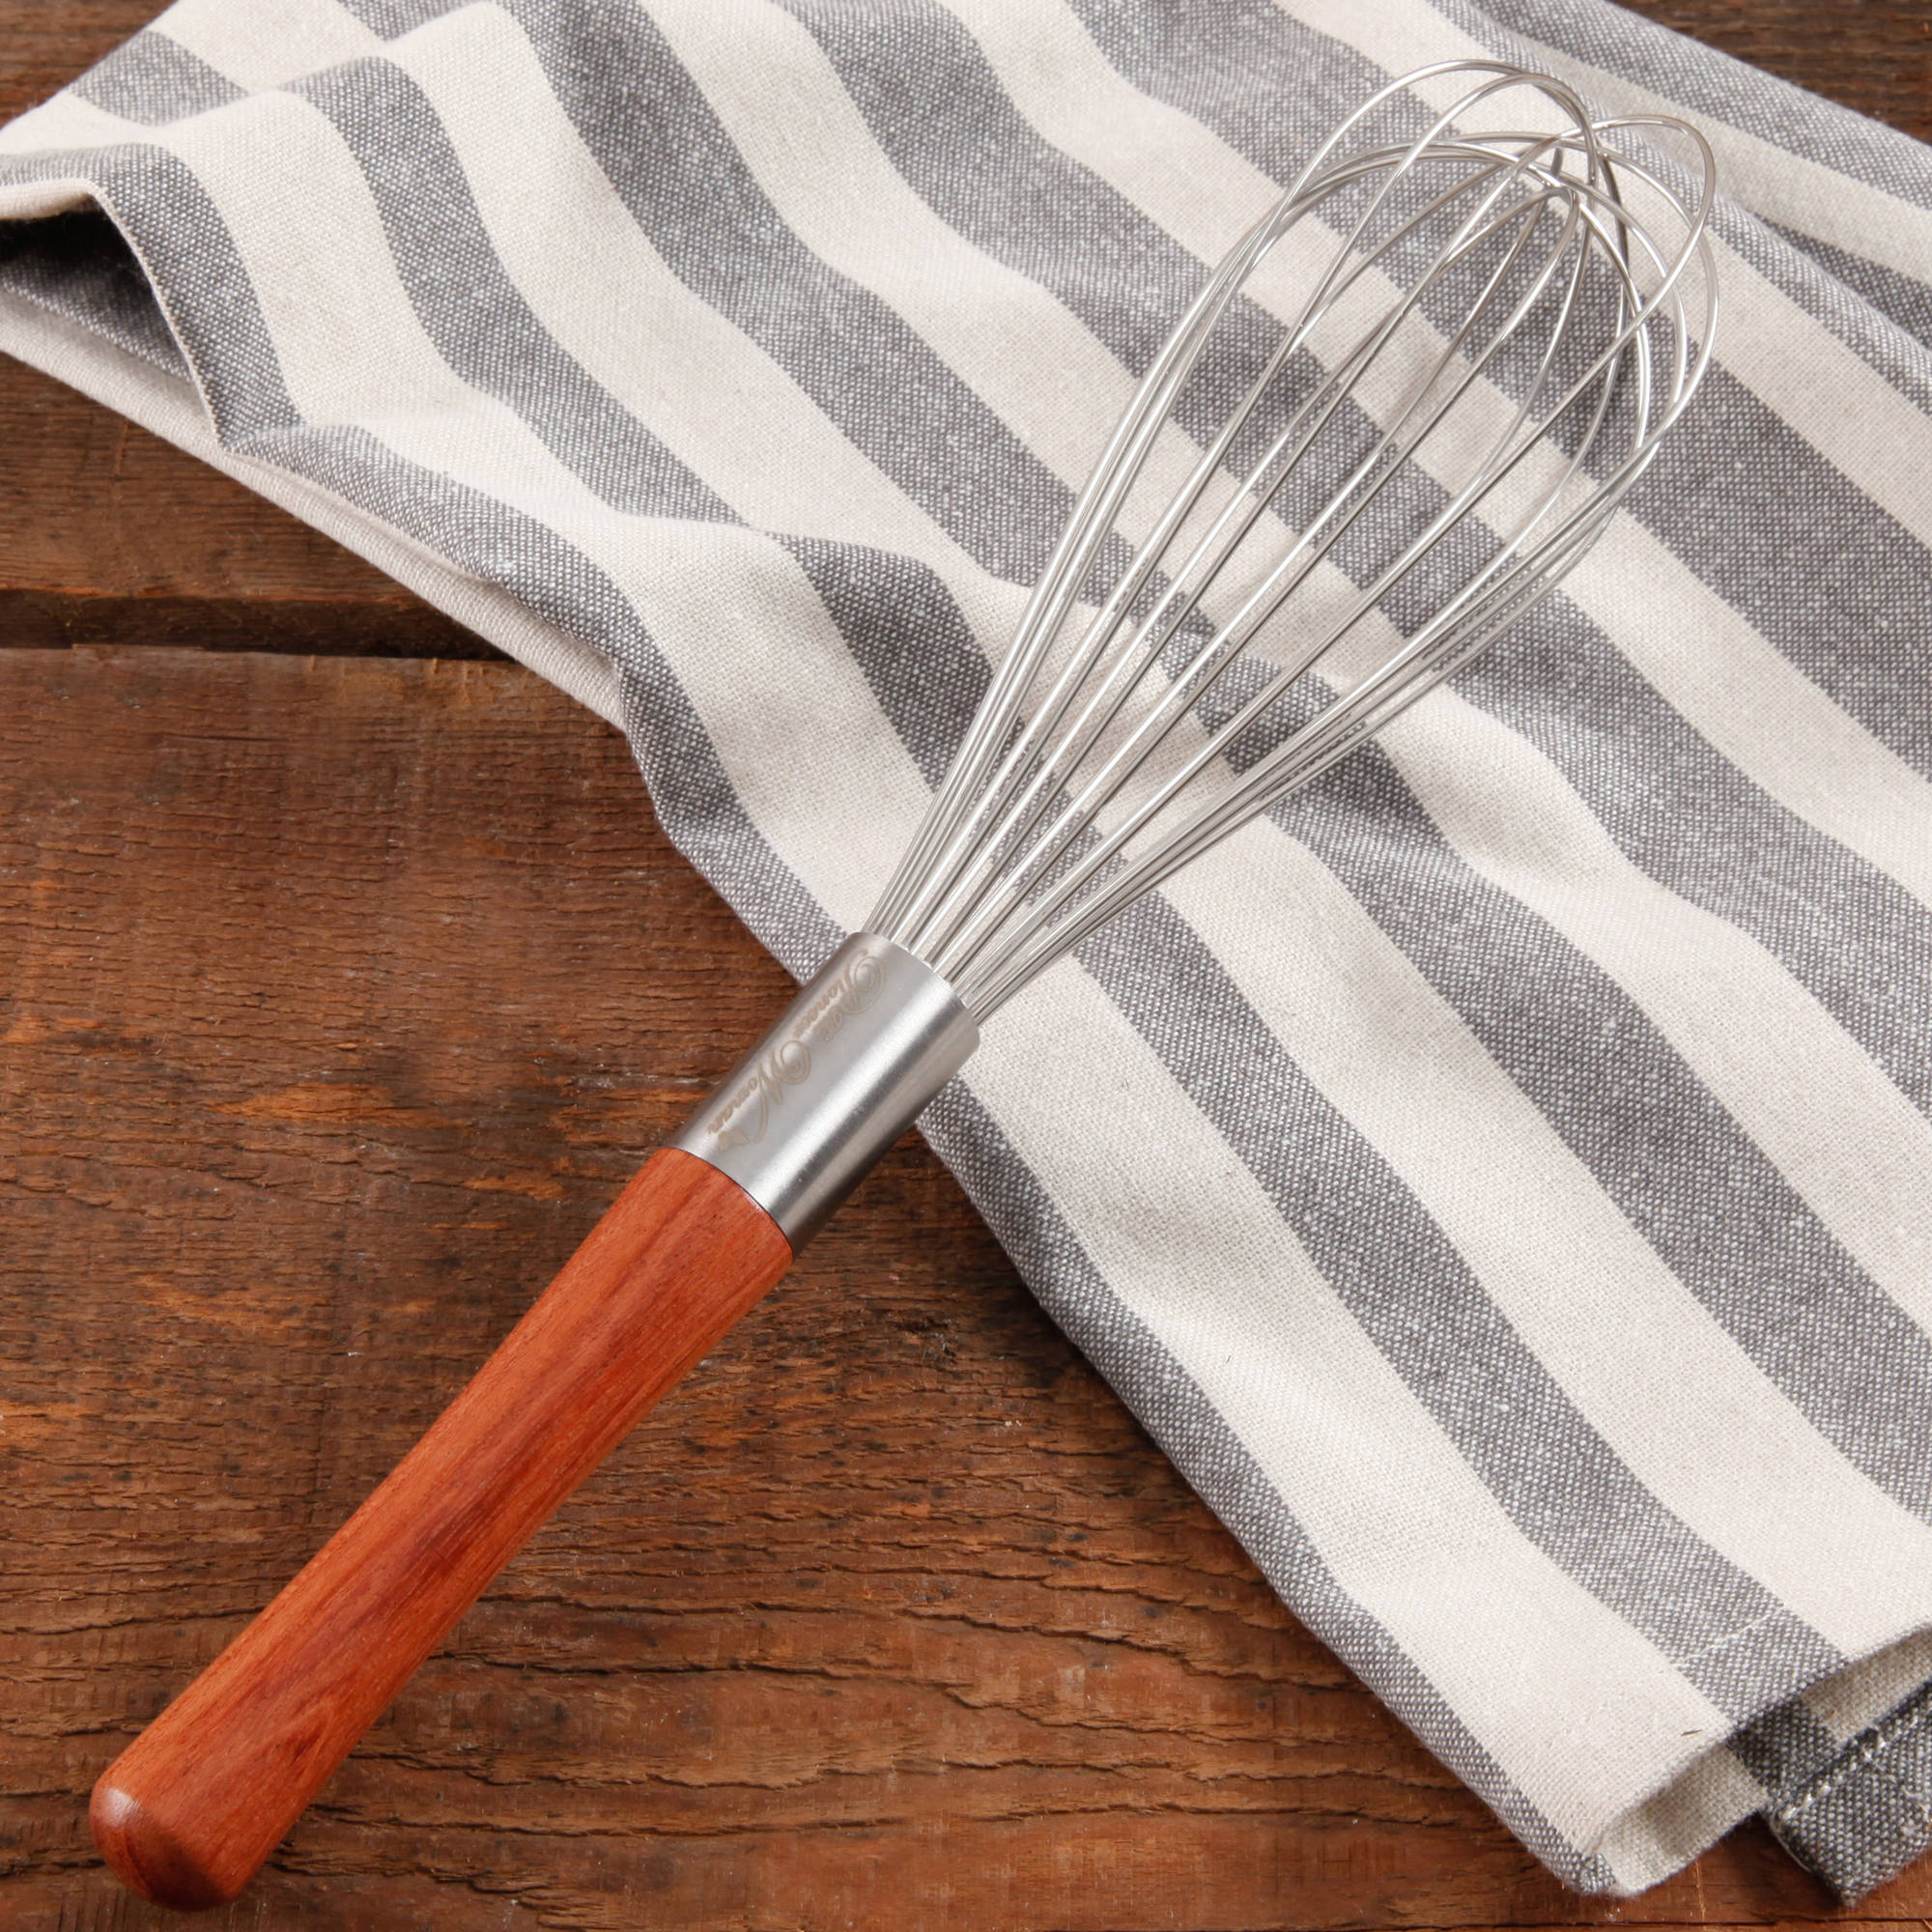 The Pioneer Woman Cowboy Rustic Rosewood Handle Balloon Whisk